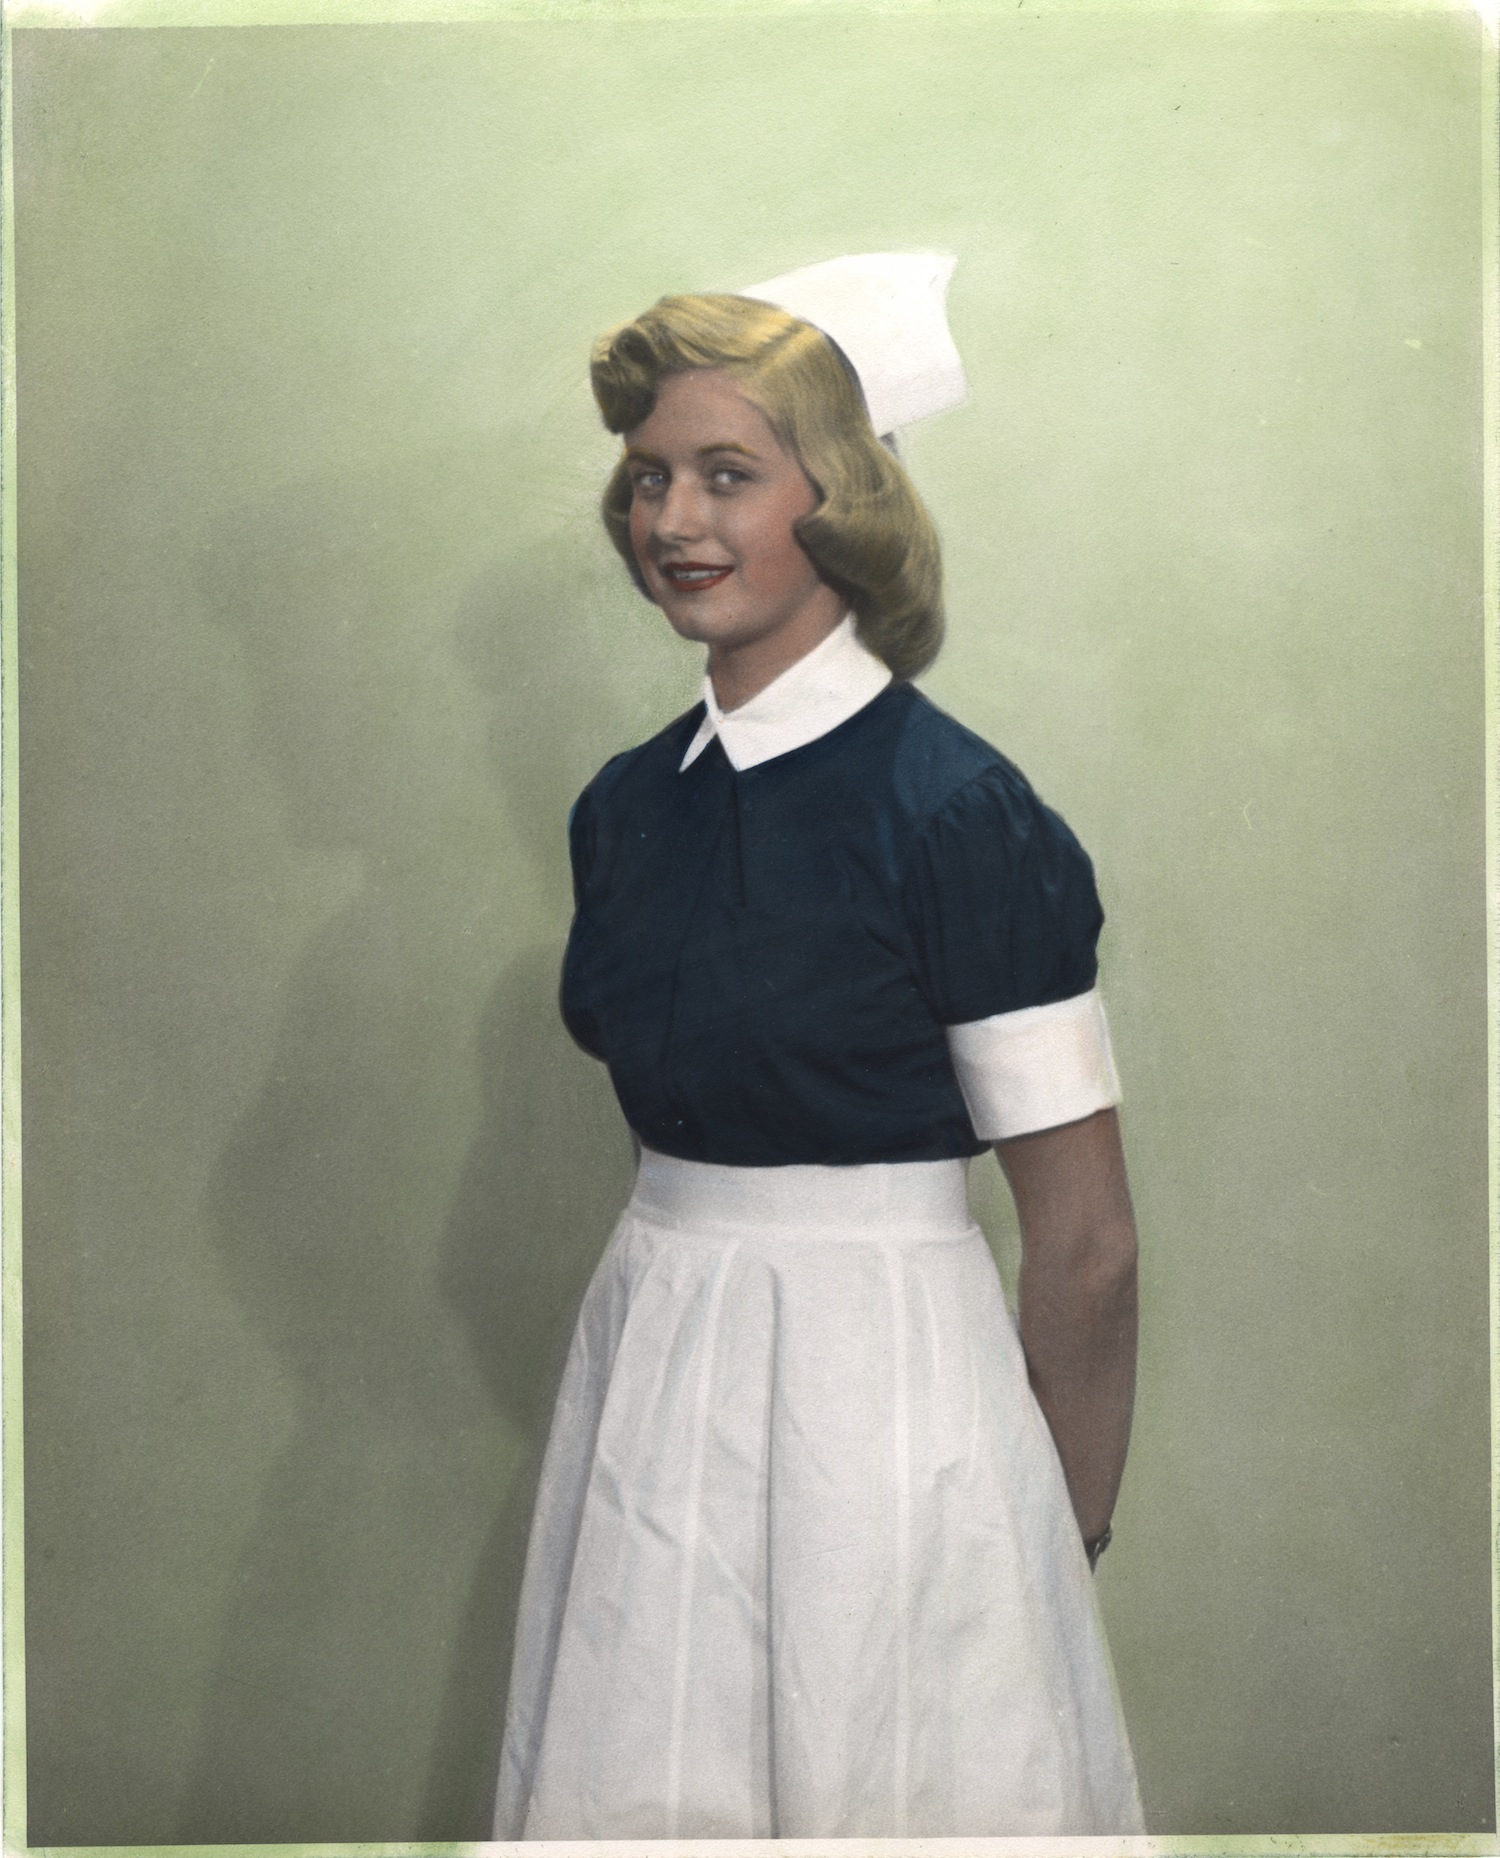 Nurse wearing uniform from Lebanon